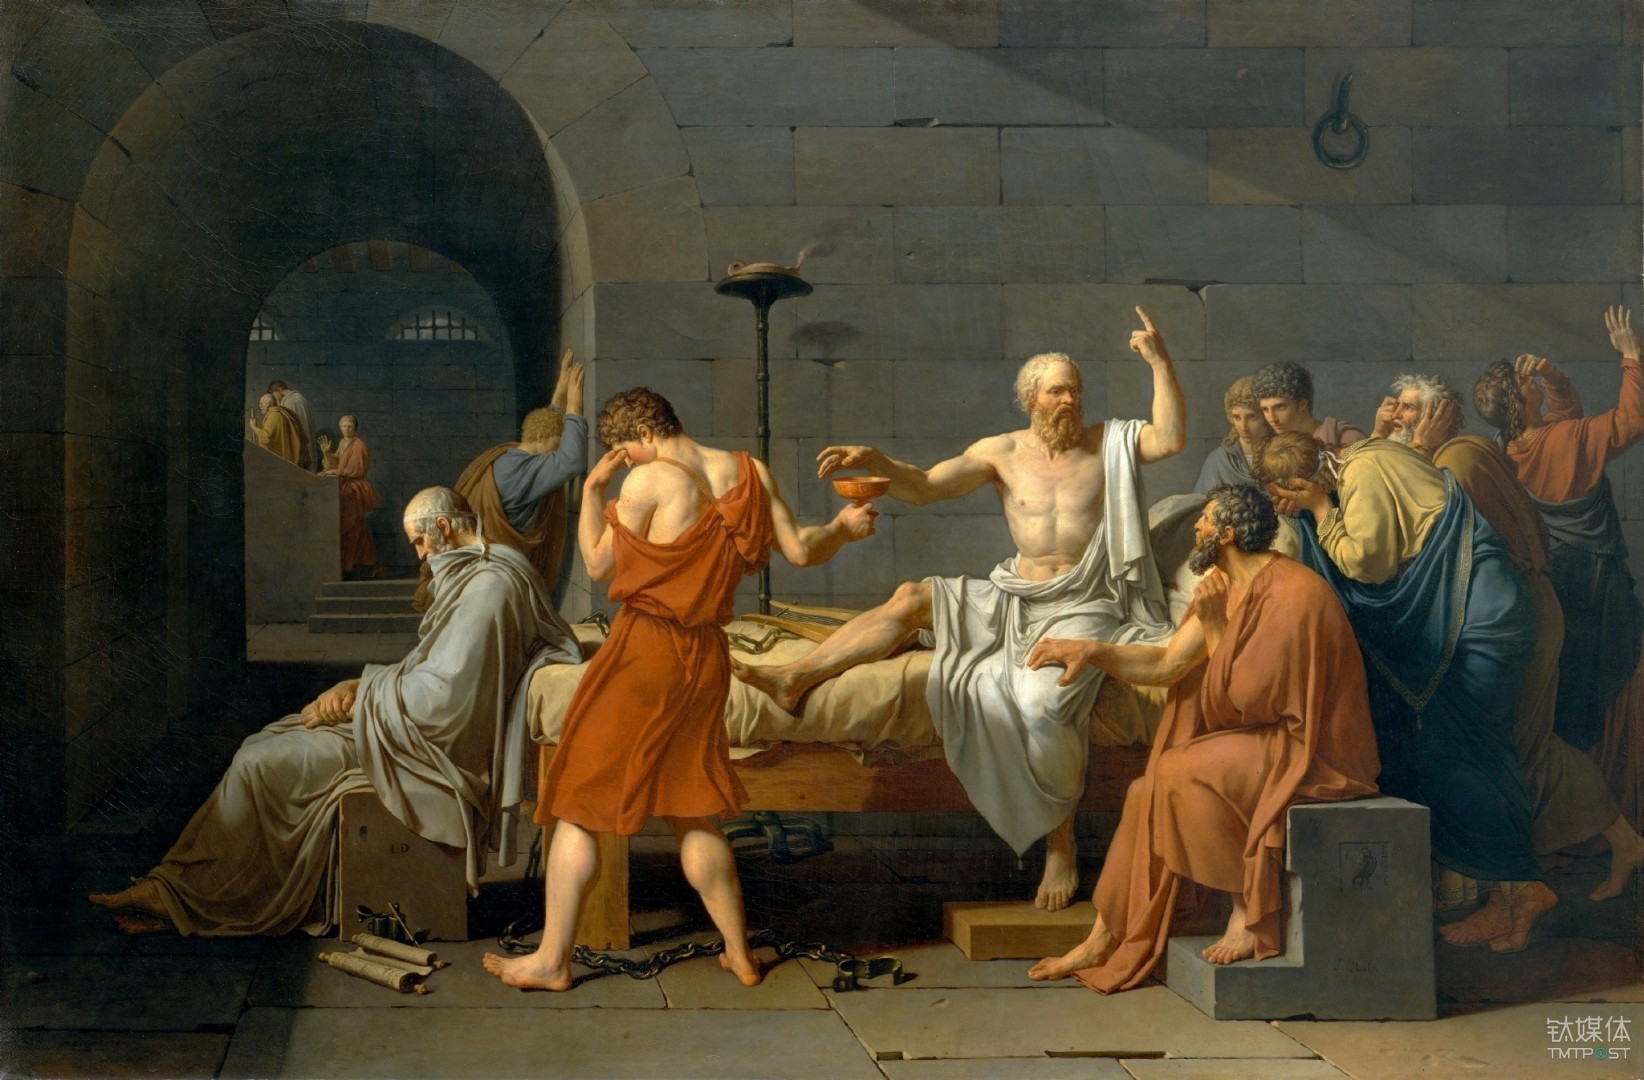 The Death of Socrates, by Jacques-Louis David, 1787 / Metropolitan Museum of Art, New York